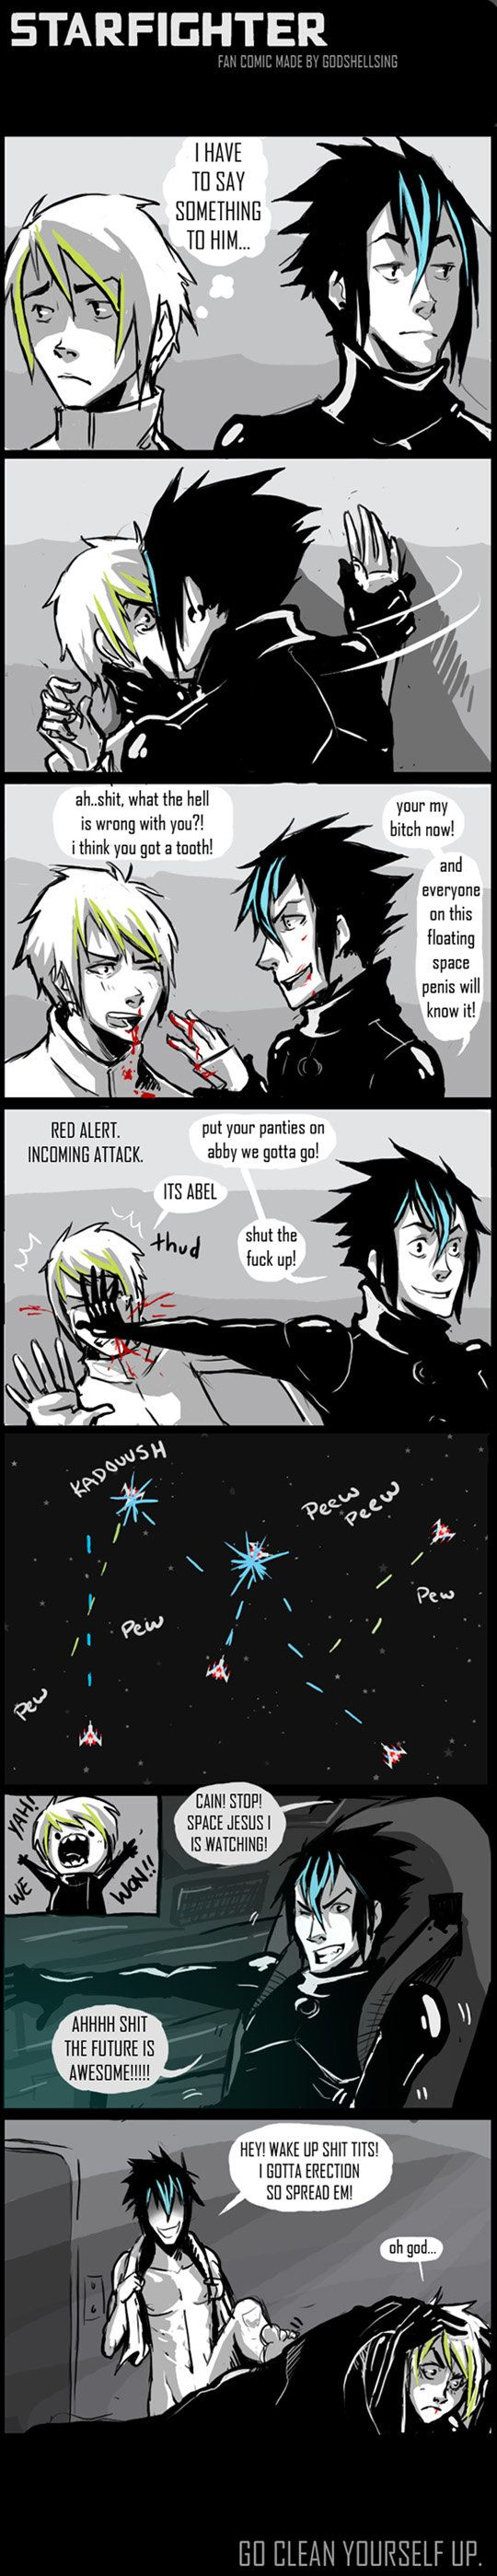 Starfighter- Cain and Able #WebComic #Yaoi for so reason this is really funny XD